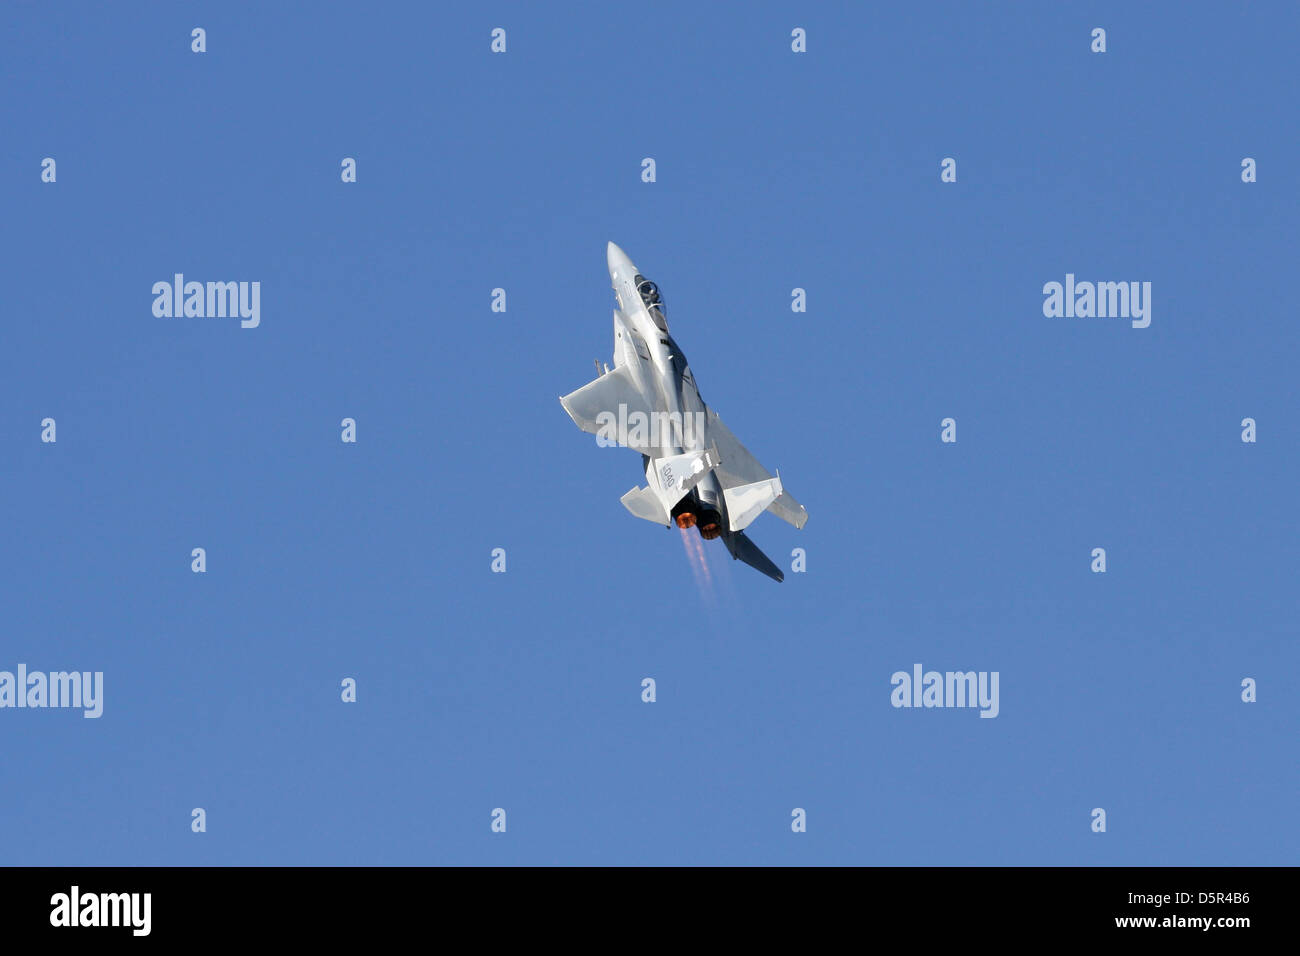 F-15 Military Jet in a climb with afterburners shooting flames. Stock Photo